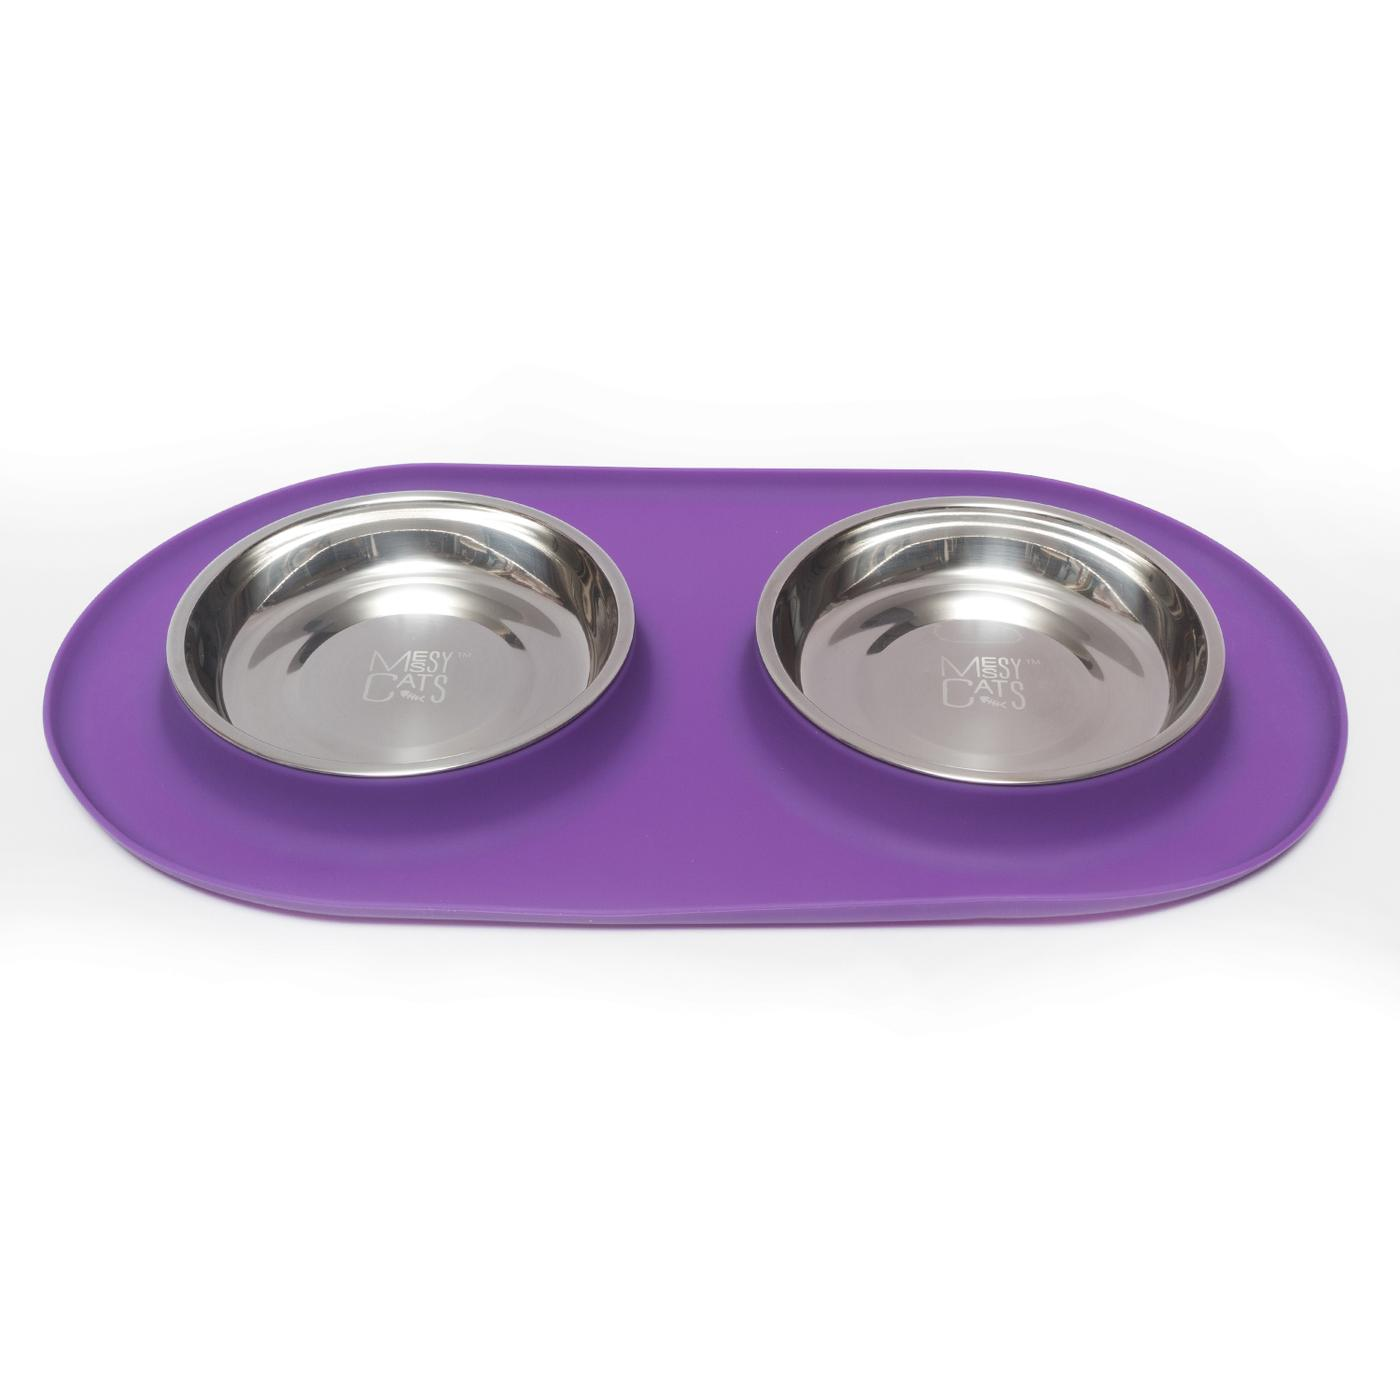 Messy Cats Double Silicone Feeder, Medium, Purple